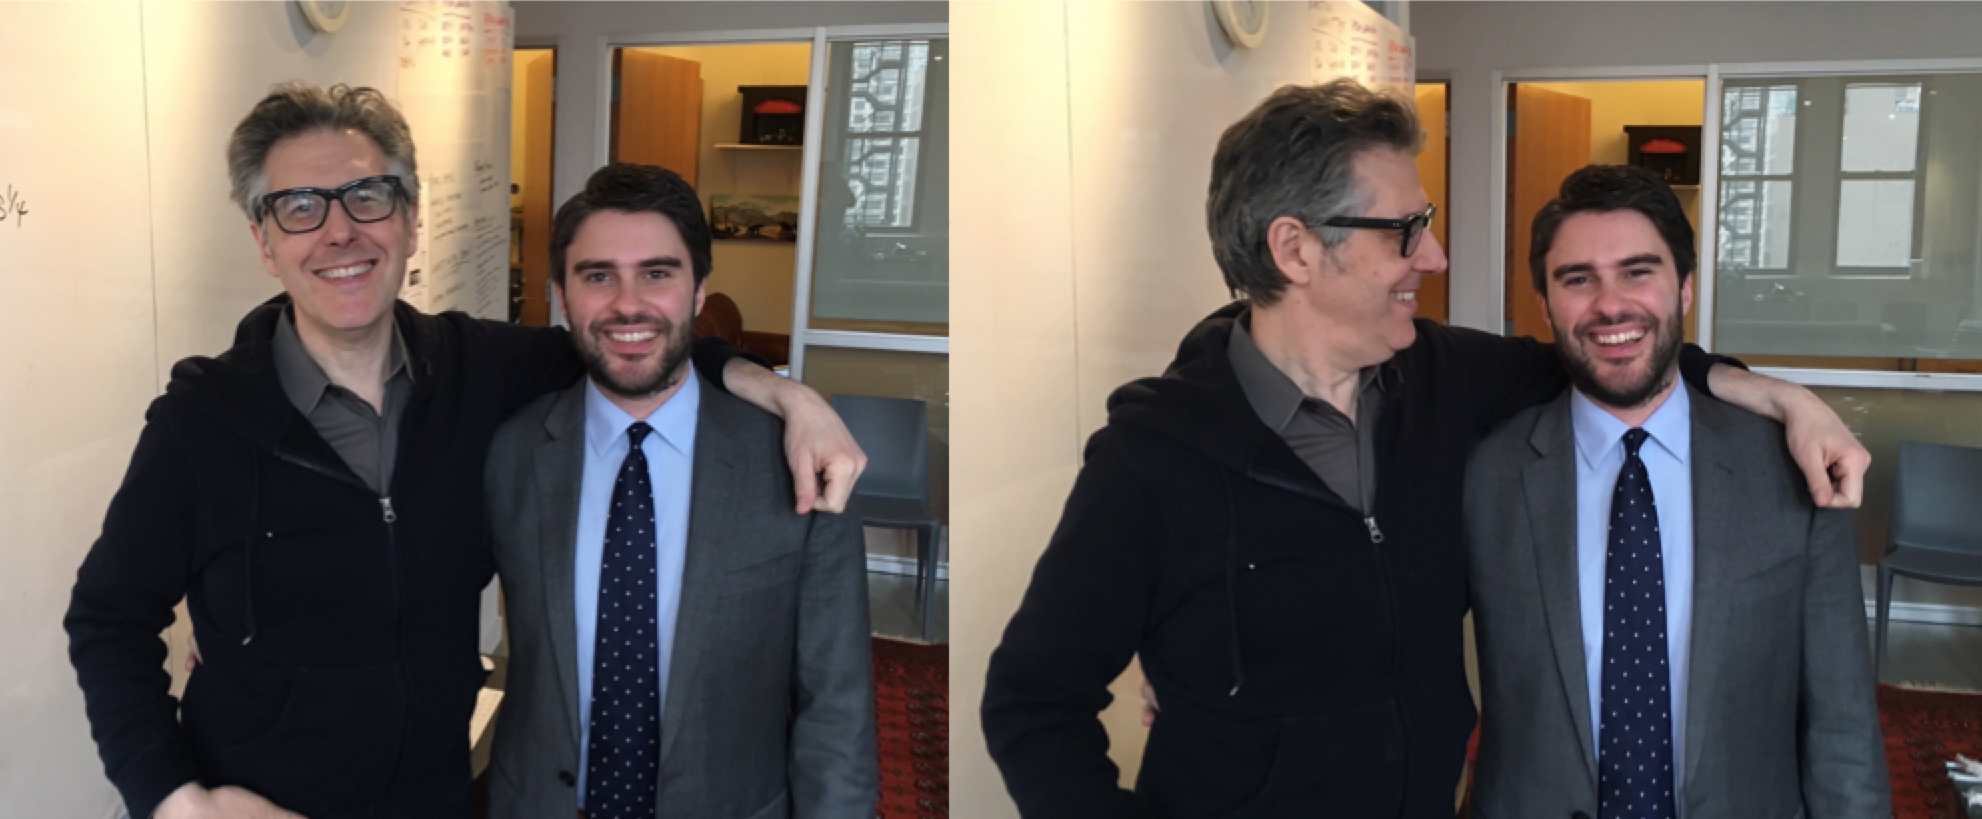 """Assistant Professor Jonathan Peters (right) met Ira Glass, host """"This American Life"""" while he was in New York City earlier this year giving the show's staff a training session on media law."""